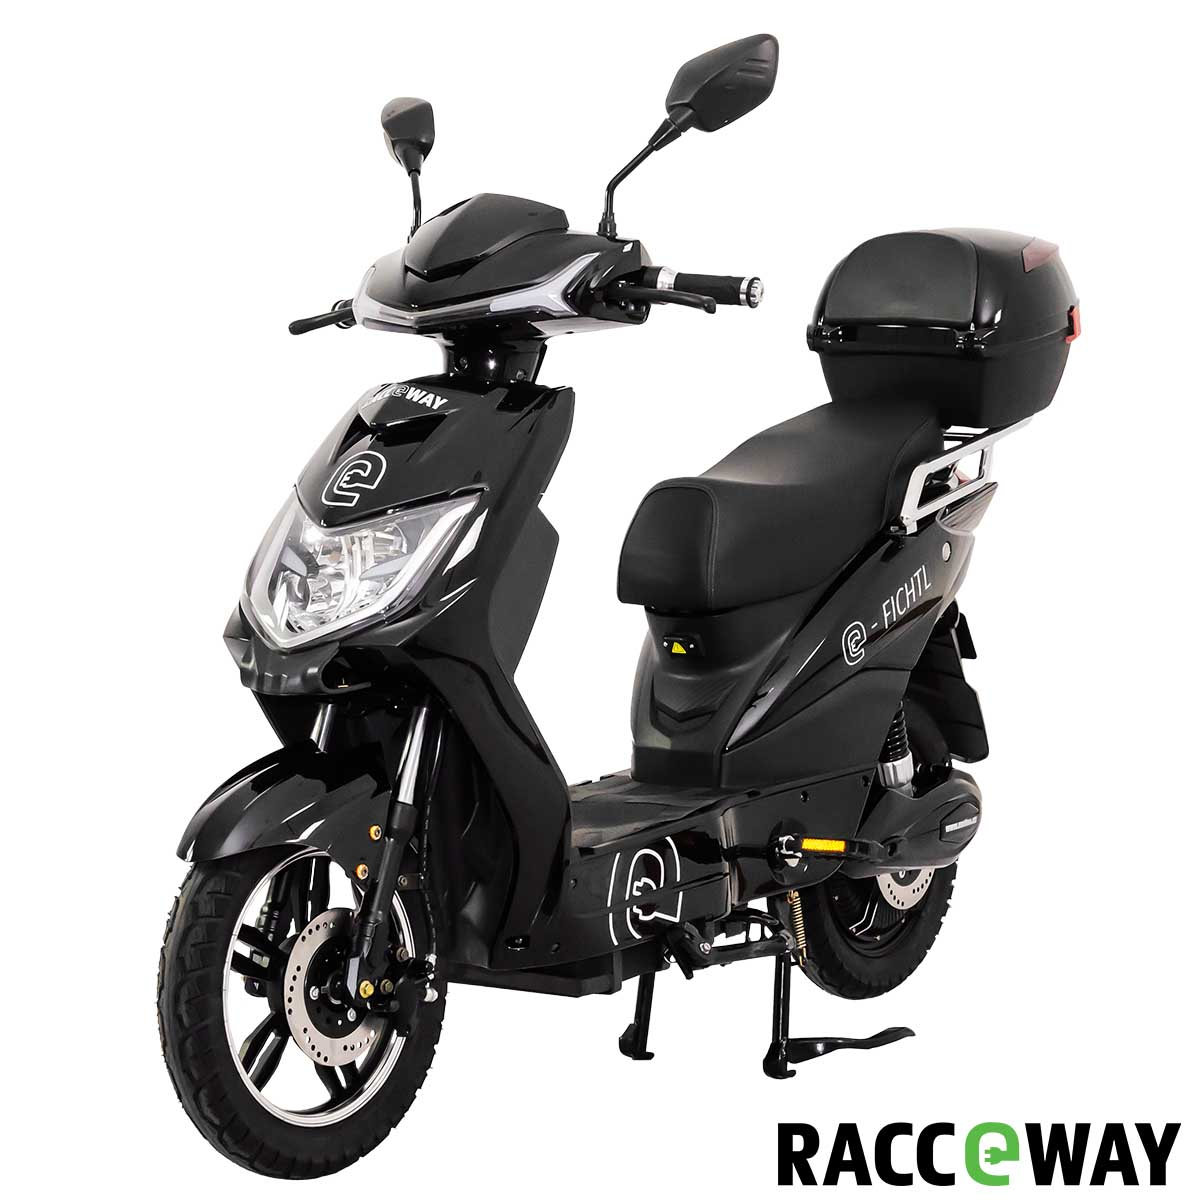 https://www.racceway.cz/inshop/catalogue/products/pictures/motoe-1f-02_a3.jpg?timestamp=20210927085842